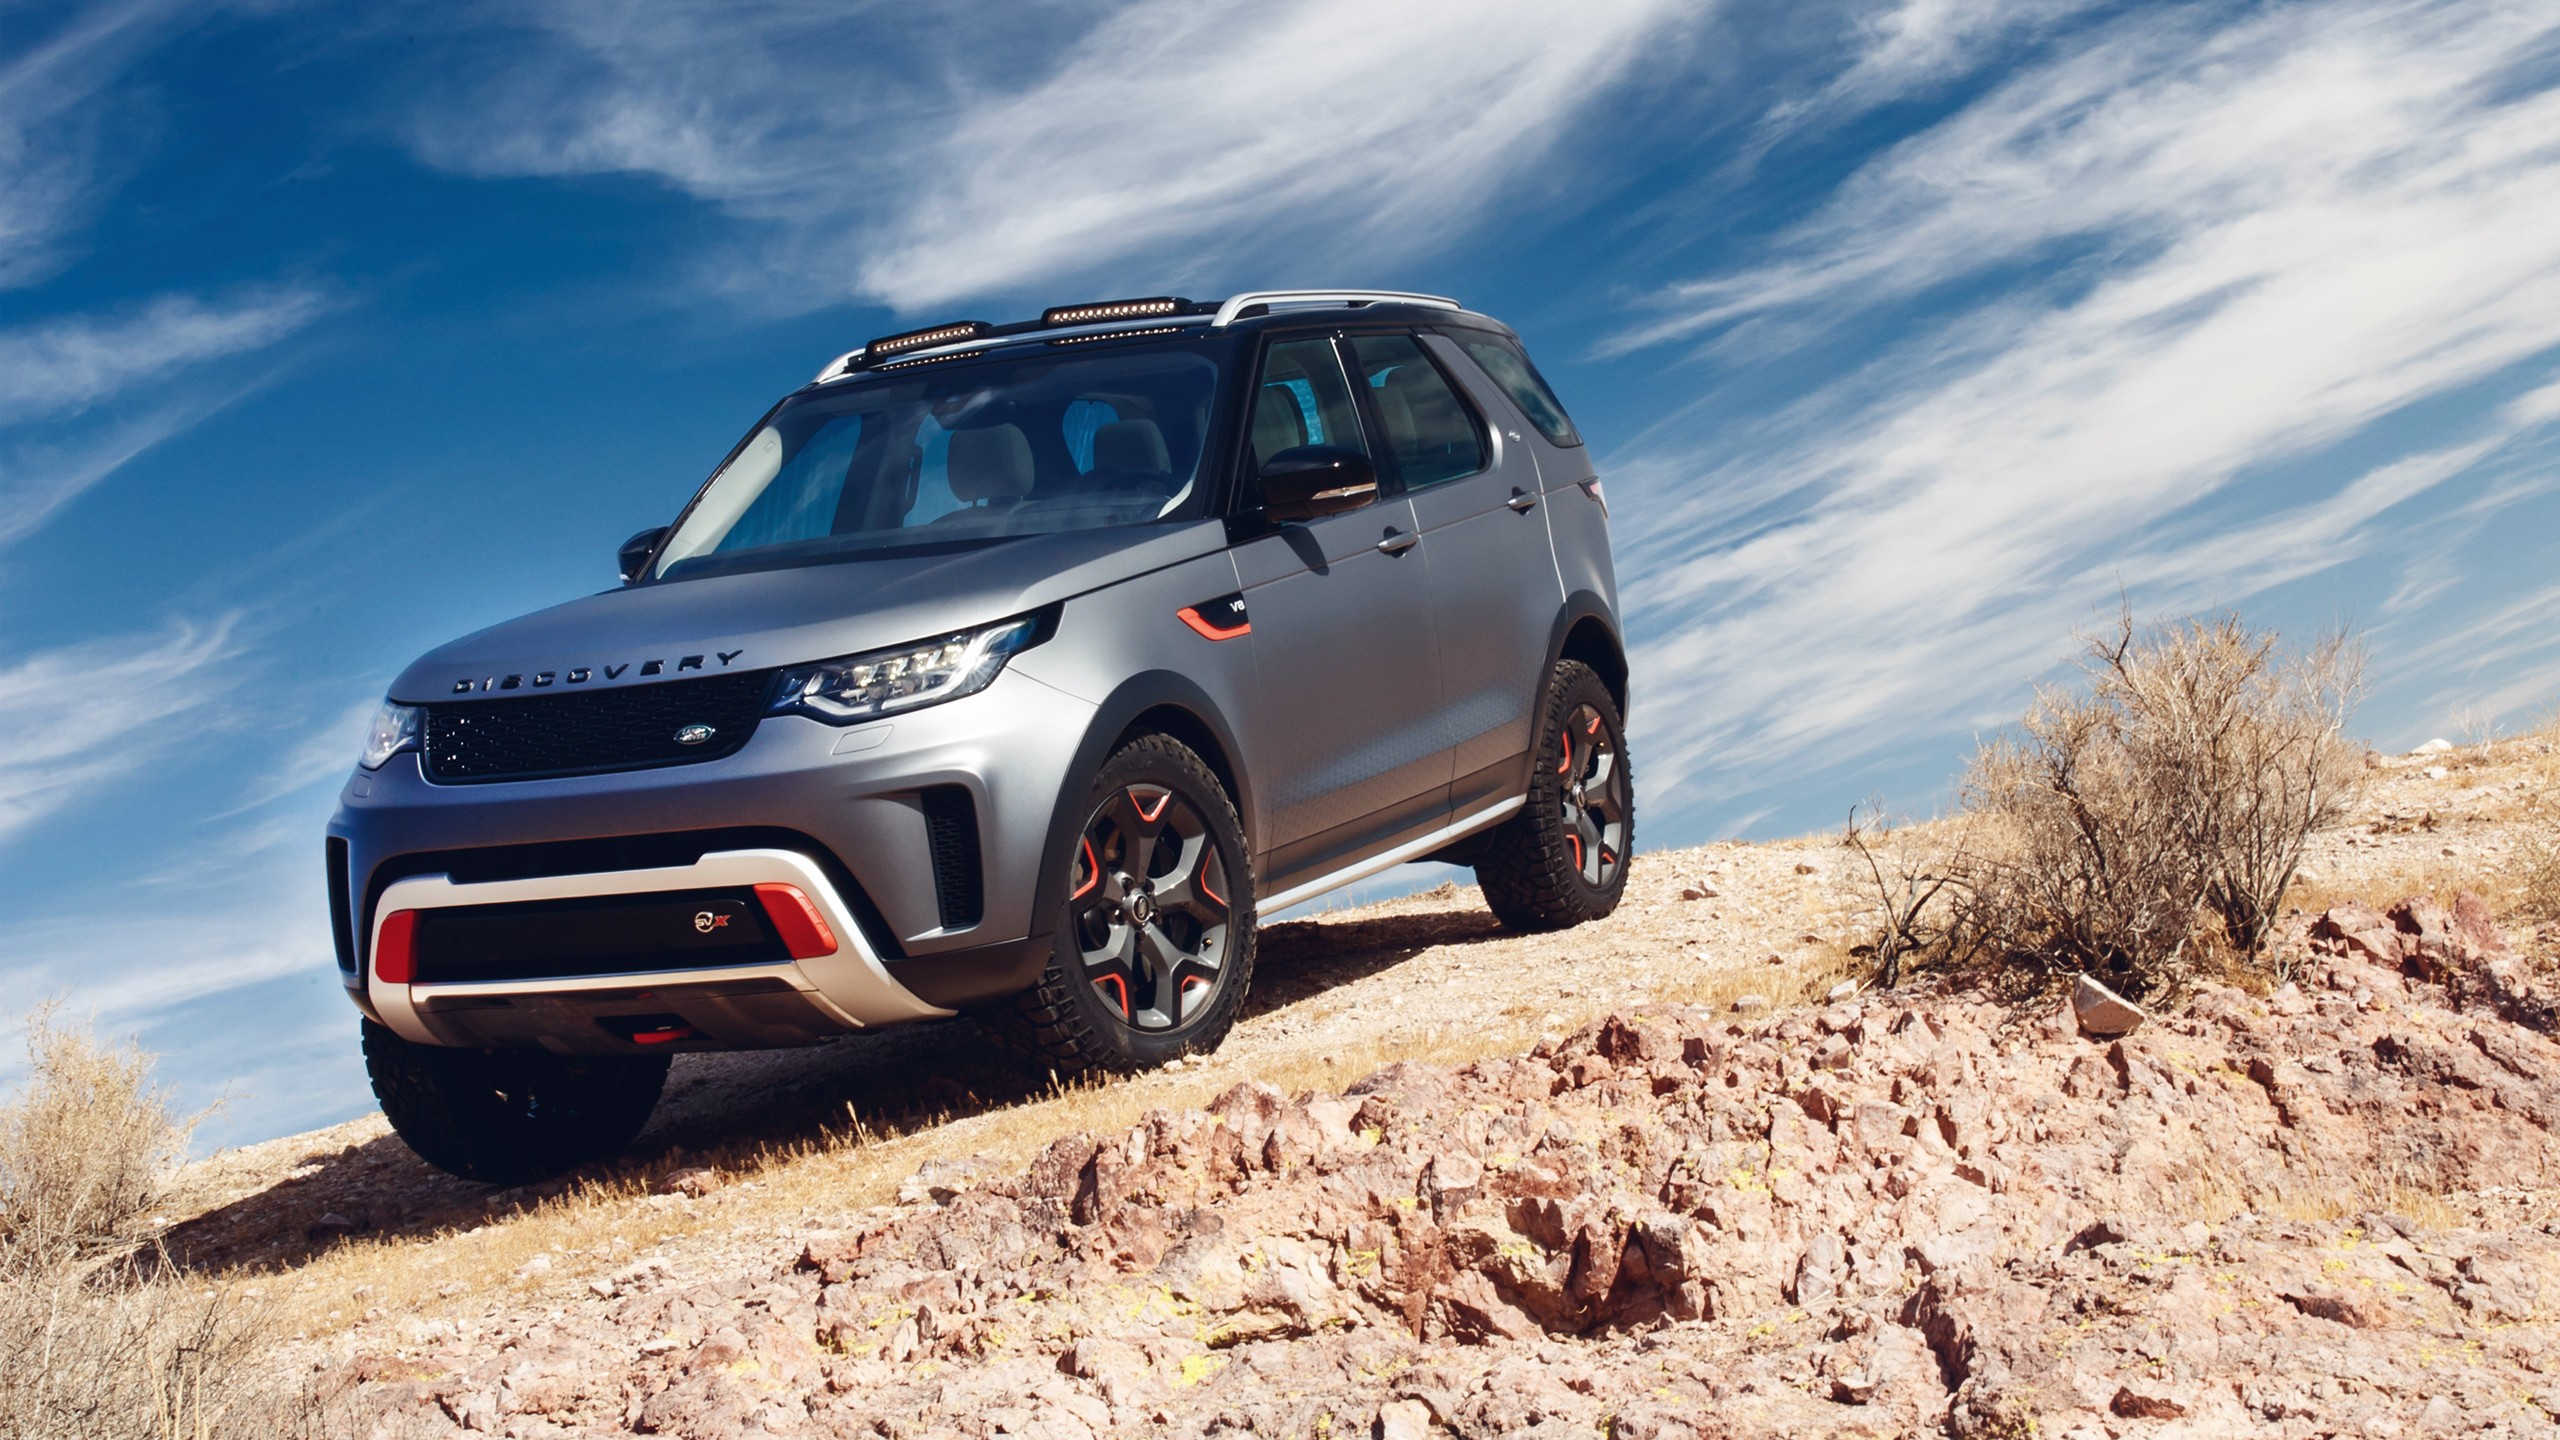 Discovery Range Rover 2017 >> 2018 Land Rover Discovery SVX 2 Wallpaper | HD Car Wallpapers | ID #9161